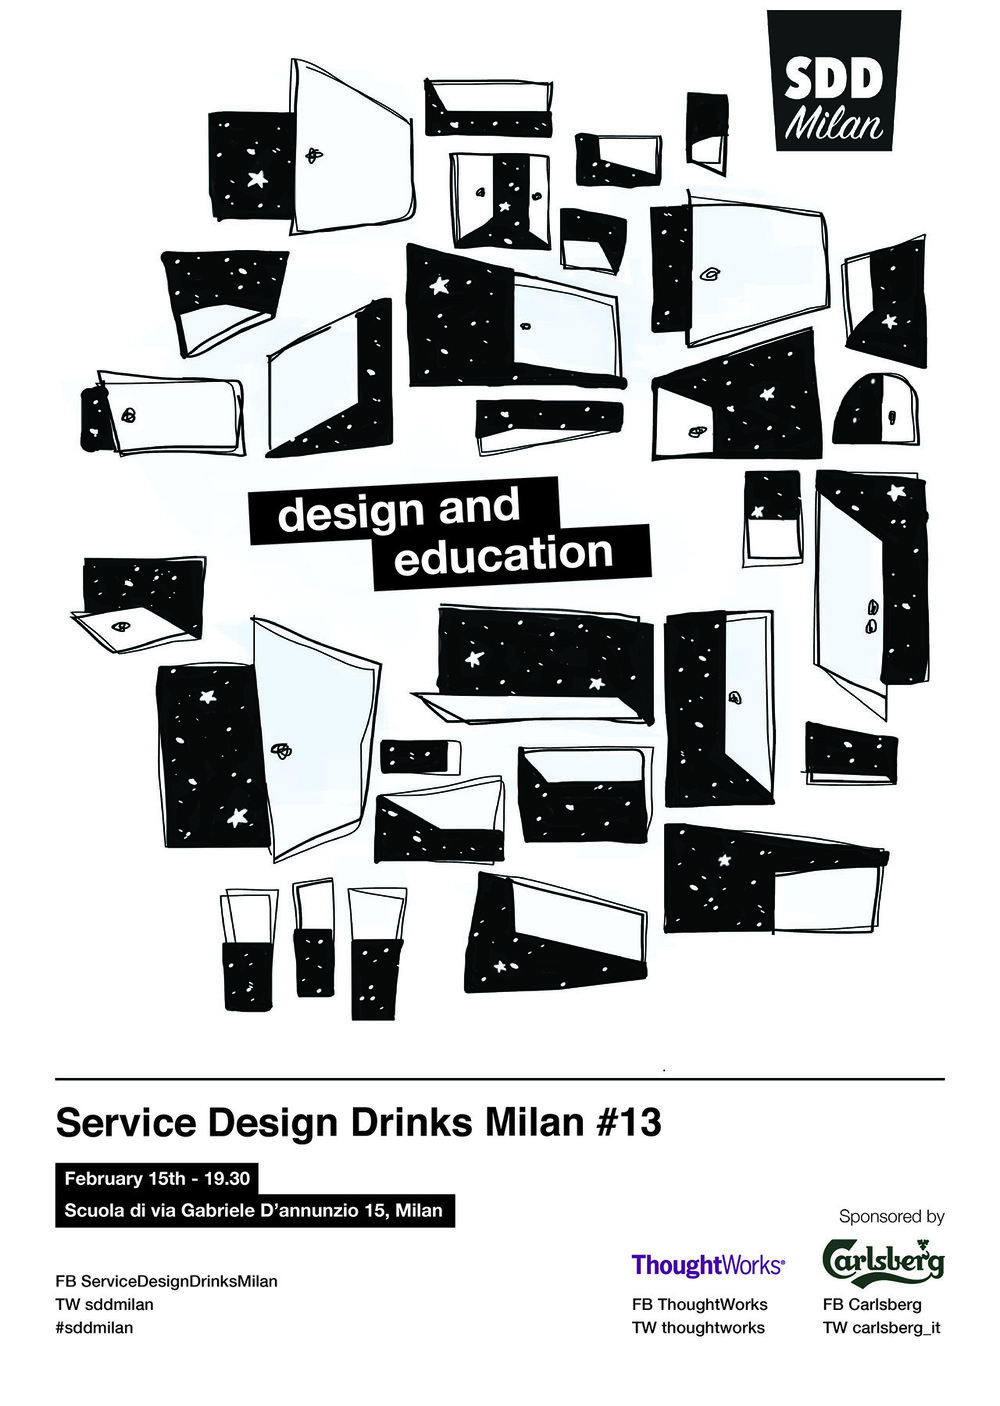 Service Design Drinks Milan #13 - Design and education.jpg